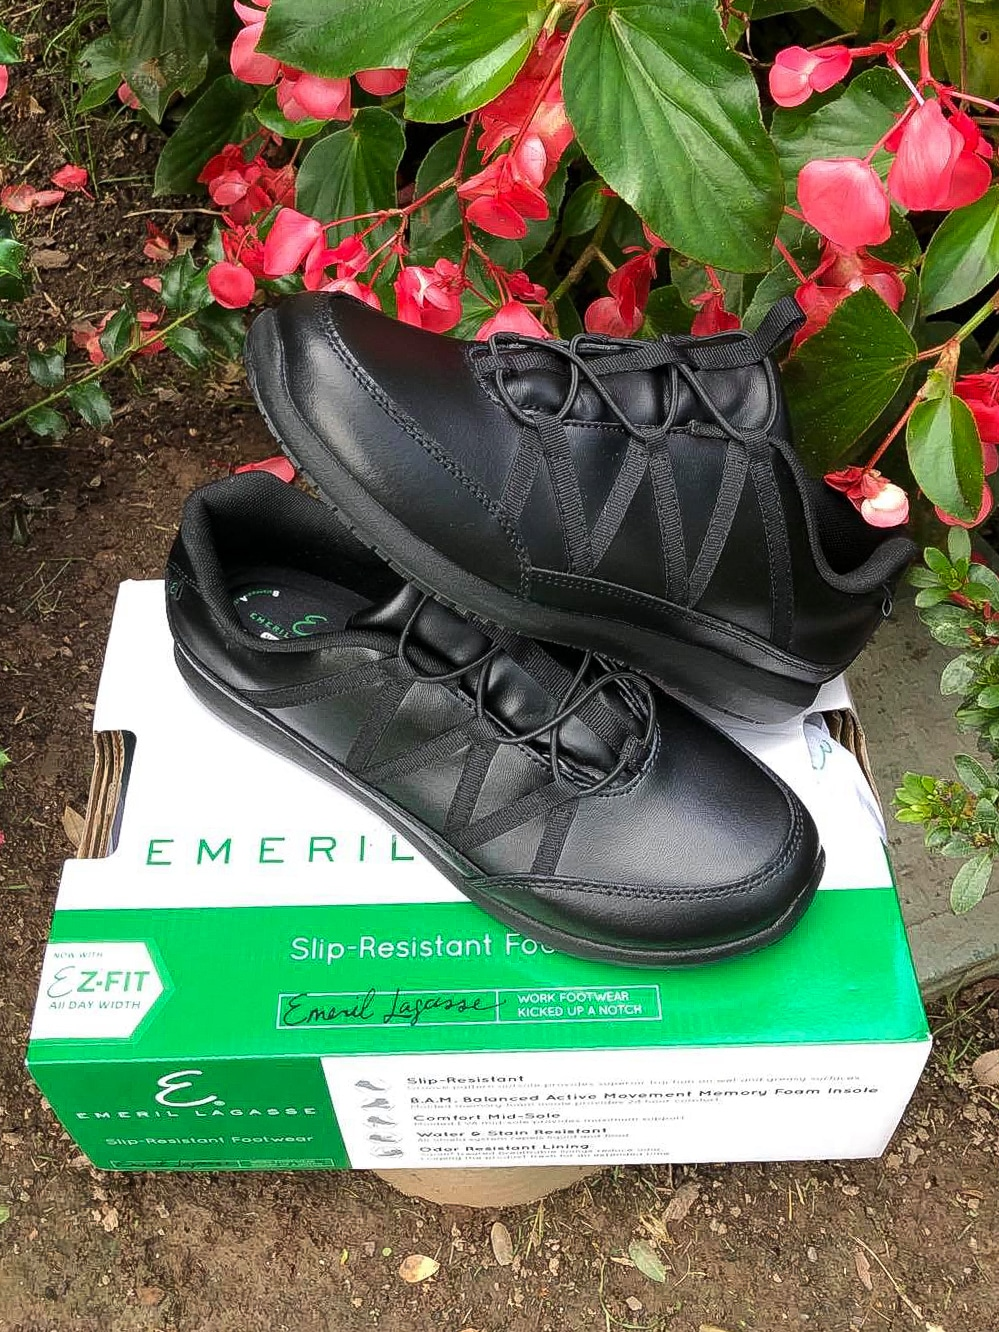 Emrils Footwear Miro Review. Step into a new pair of Chef Emeril Lagasse's work footwear, designed to be kicked up a notch. These specially designed shoes that Emeril Lagasse created with culinary and restaurant staff in mind, provide a safe workforce shoe that is suitable for an array of different professions.